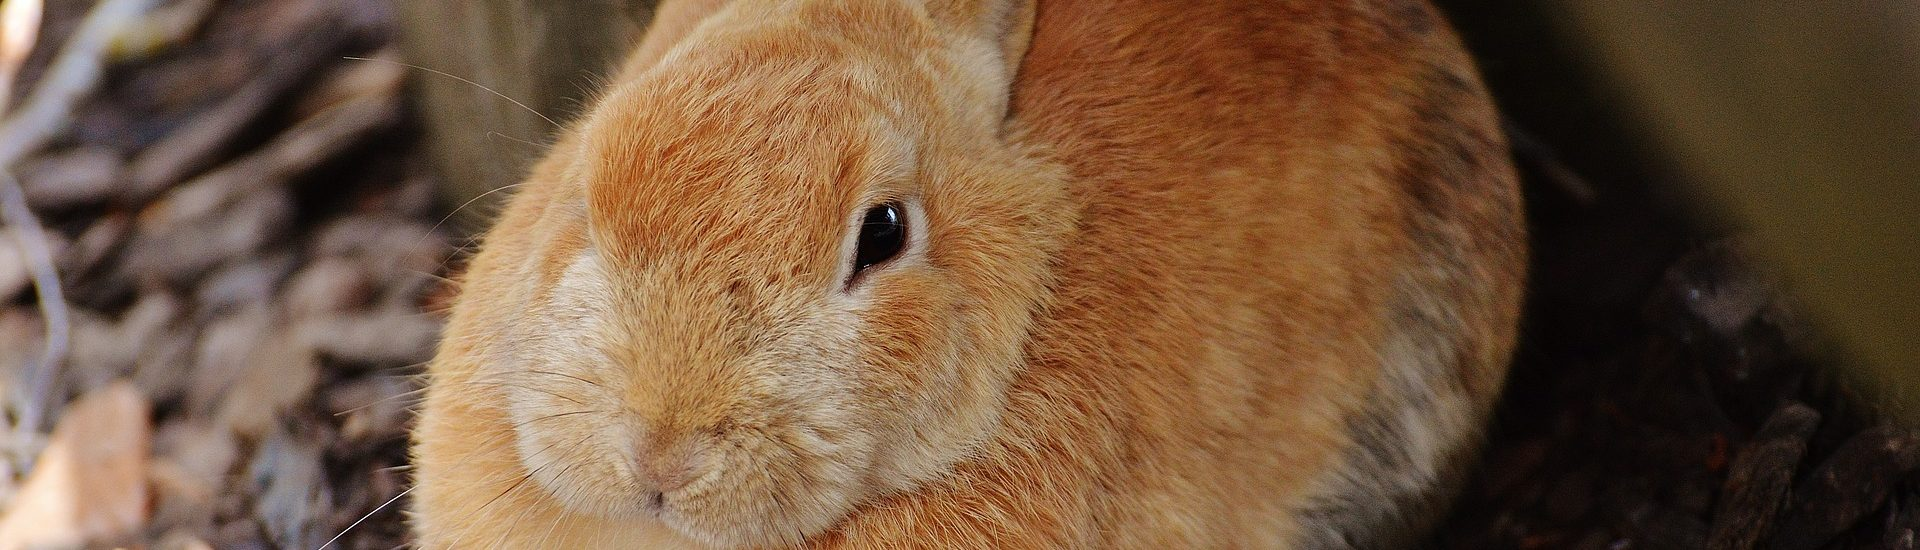 Introducing Rabbits - RSPCA South Bedfordshire Branch